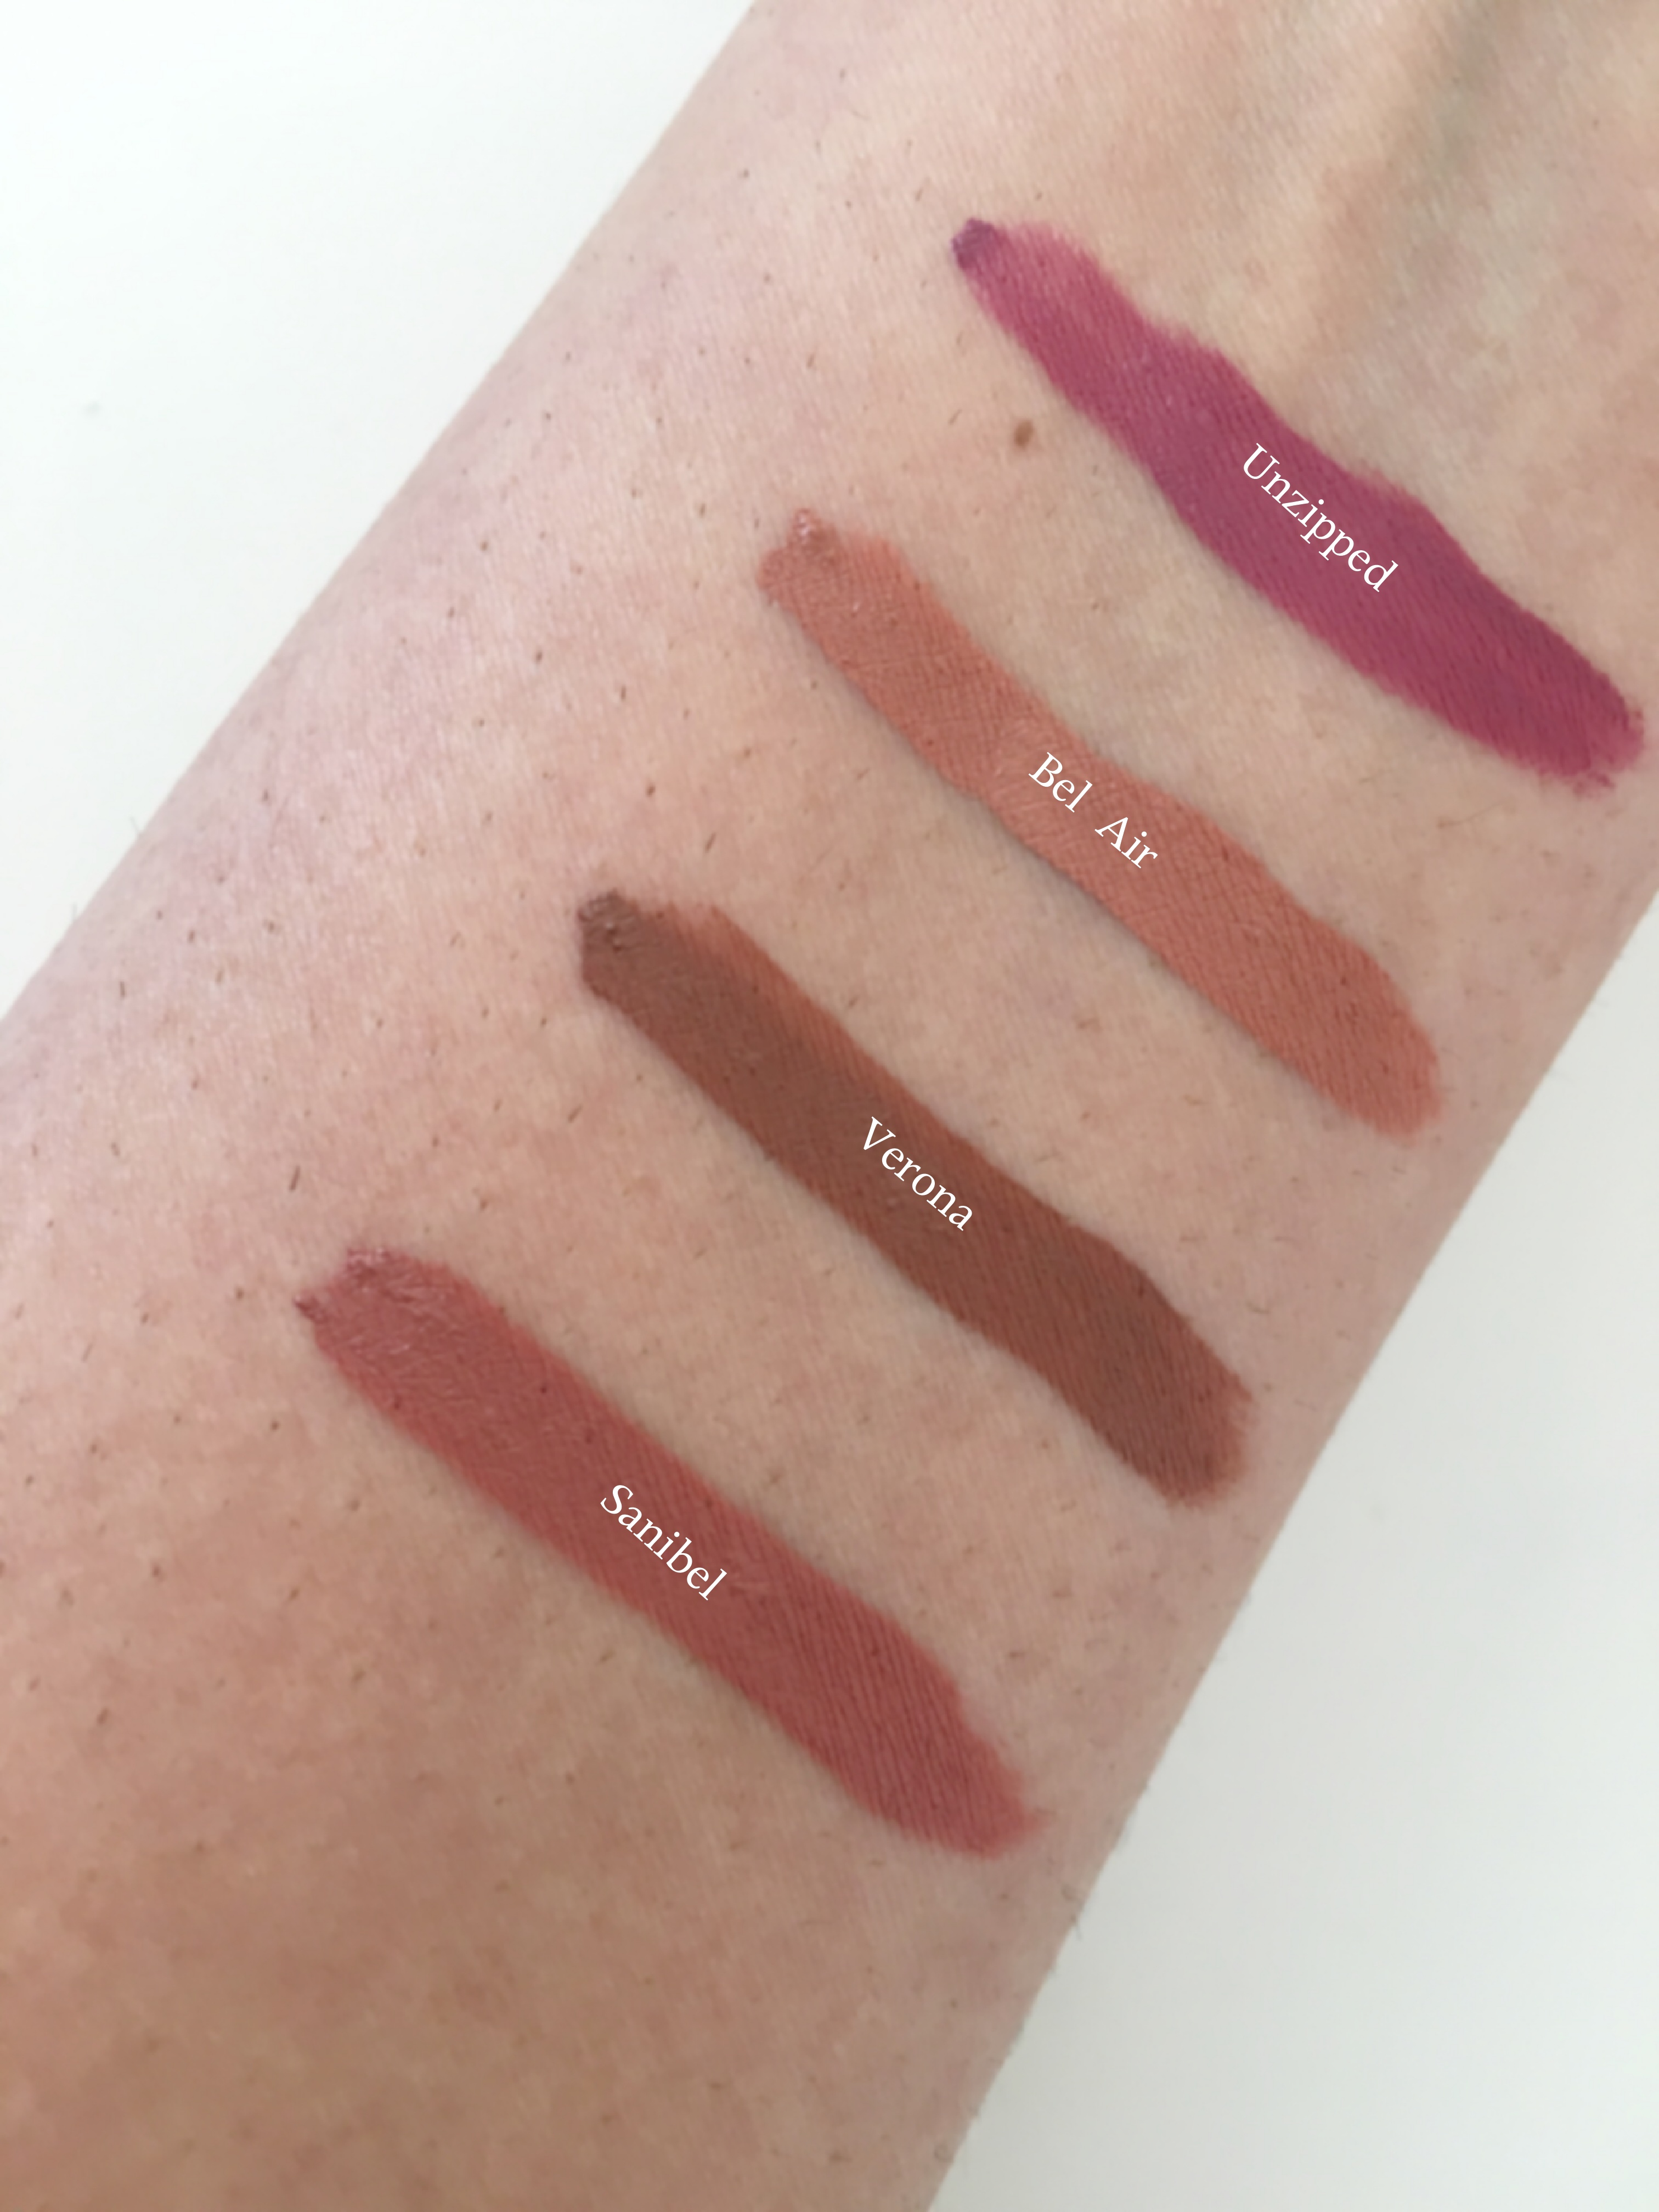 ofra lipstick swatches on indian skin